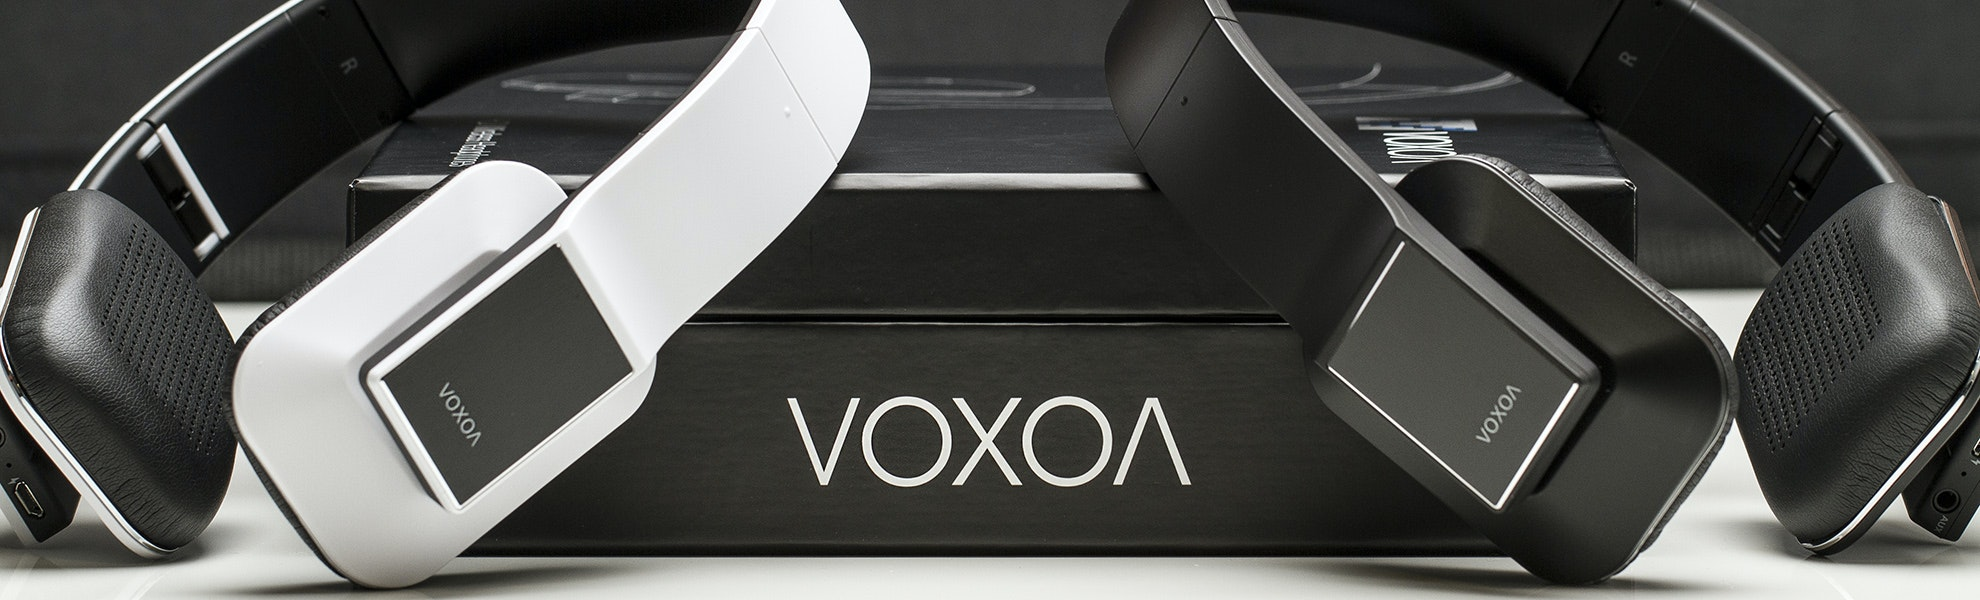 Voxoa Bluetooth Headphones